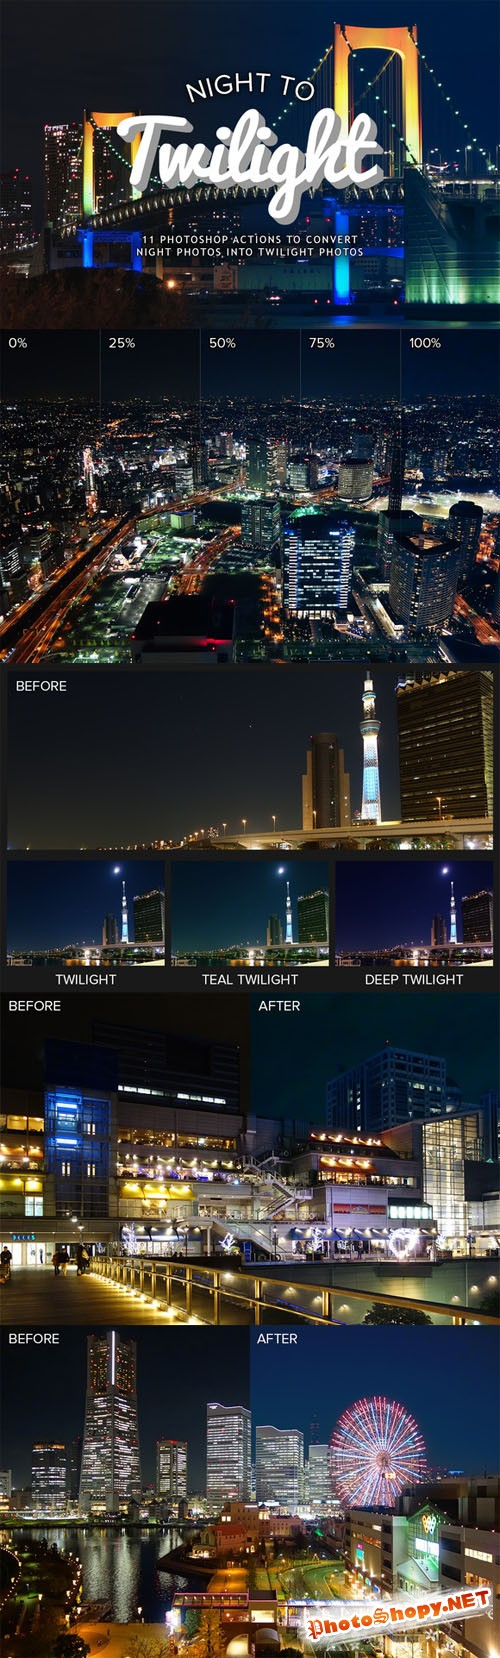 CreativeMarket - Night to Twilight Photoshop Actions